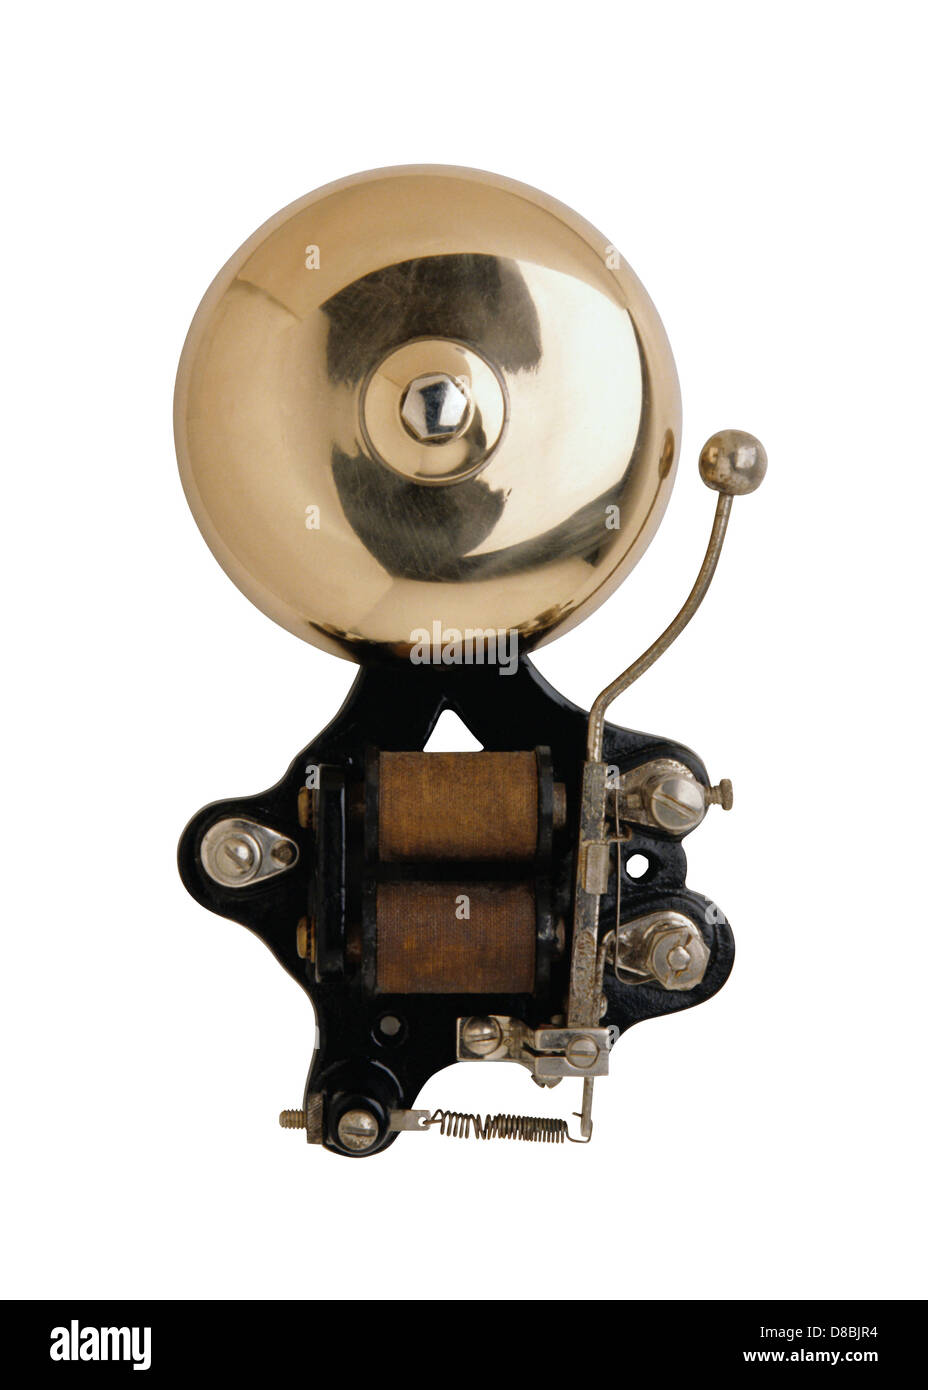 Antique doorbell - Antique Doorbell Stock Photo, Royalty Free Image: 56804584 - Alamy